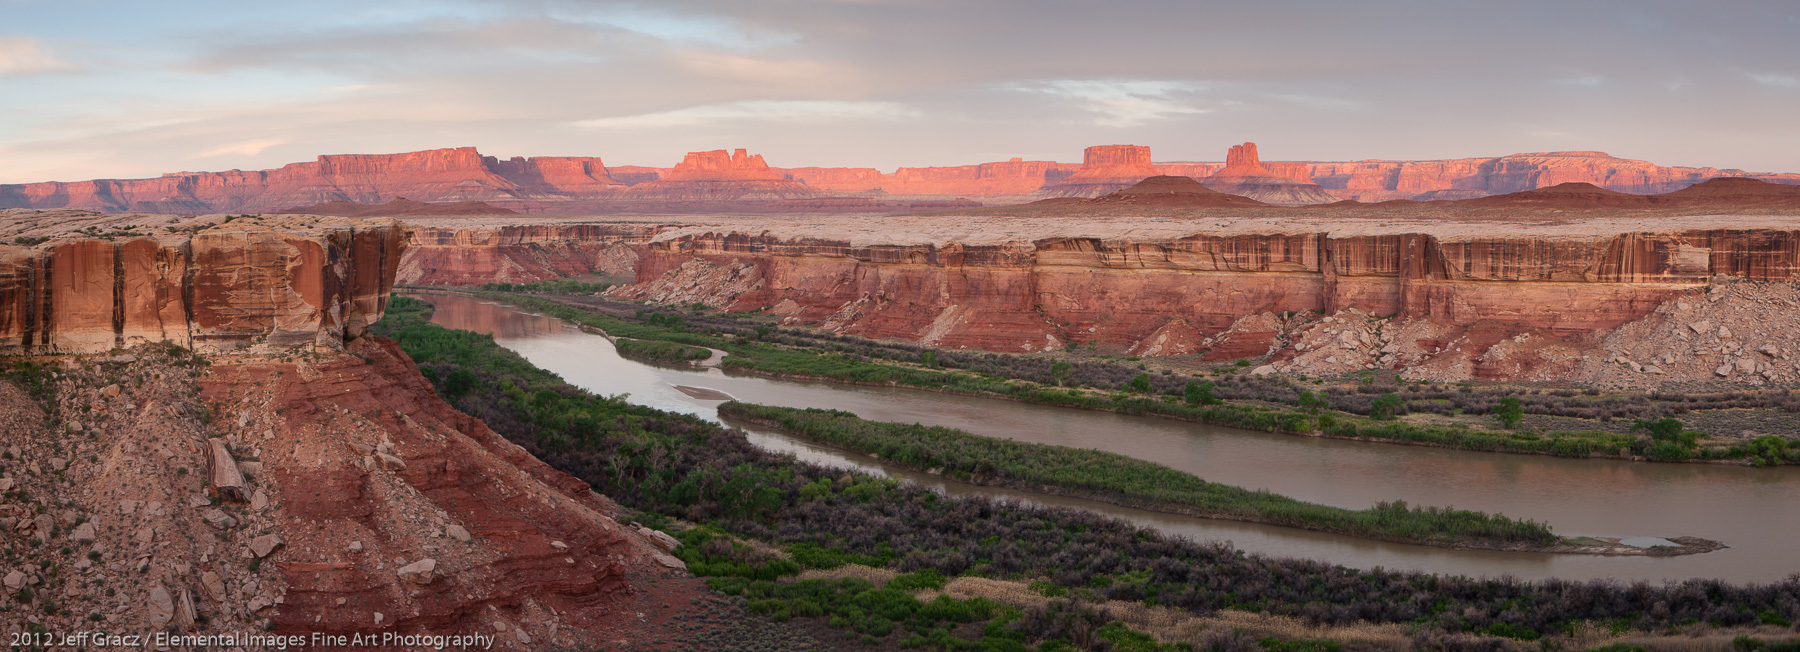 The Green River Through Canyonlands | Canyonlands National Park | UT | USA - © 2012 Jeff Gracz / Elemental Images Fine Art Photography - All Rights Reserved Worldwide